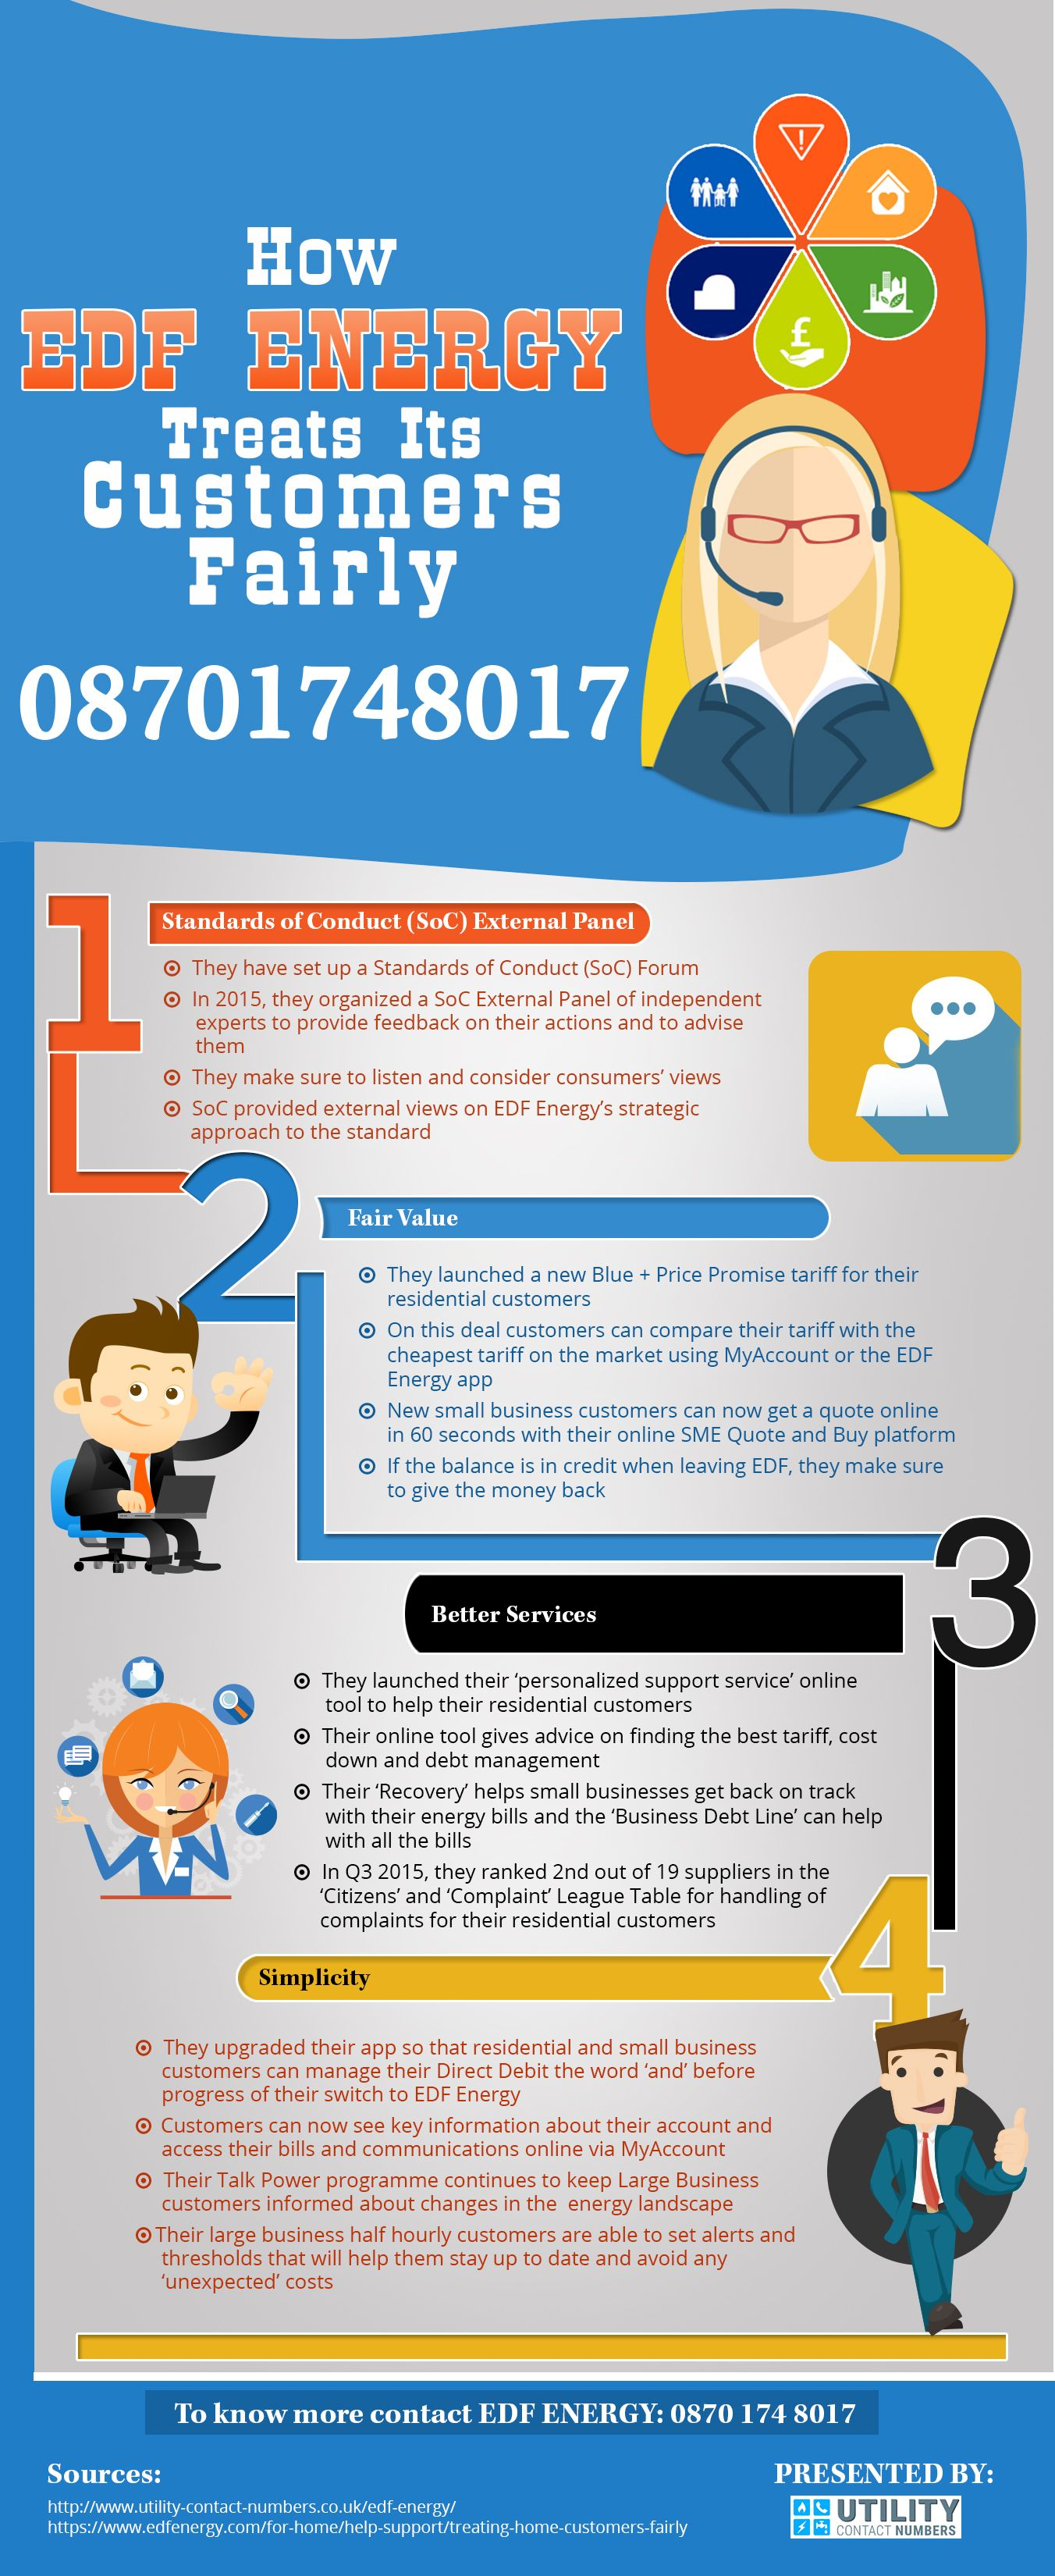 Pin By Alicia Jones On Reasons To Choose The Services Of Edf